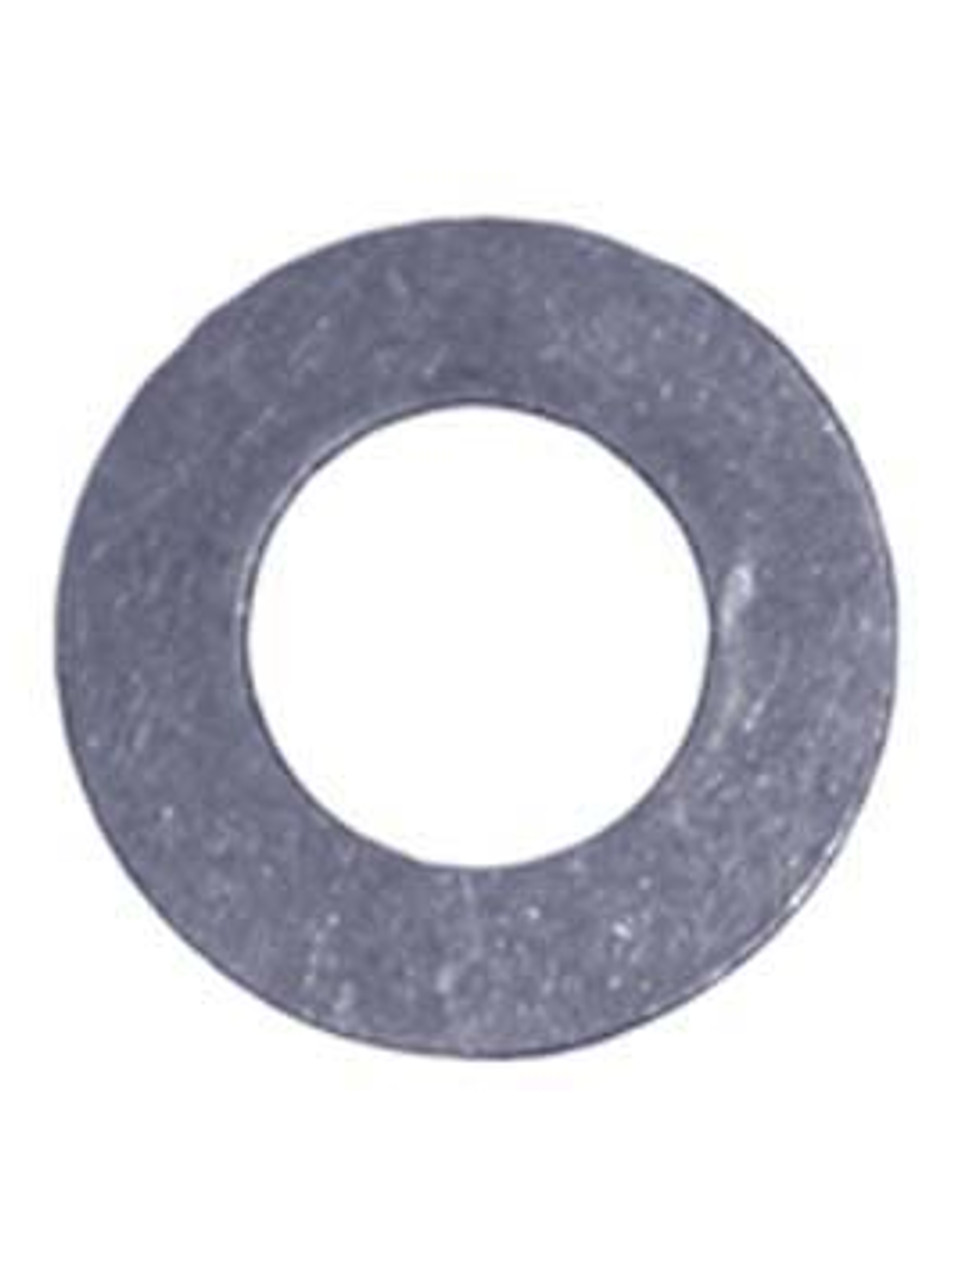 5-149 --- Nev-R-Lube Spindle Washer 50mm